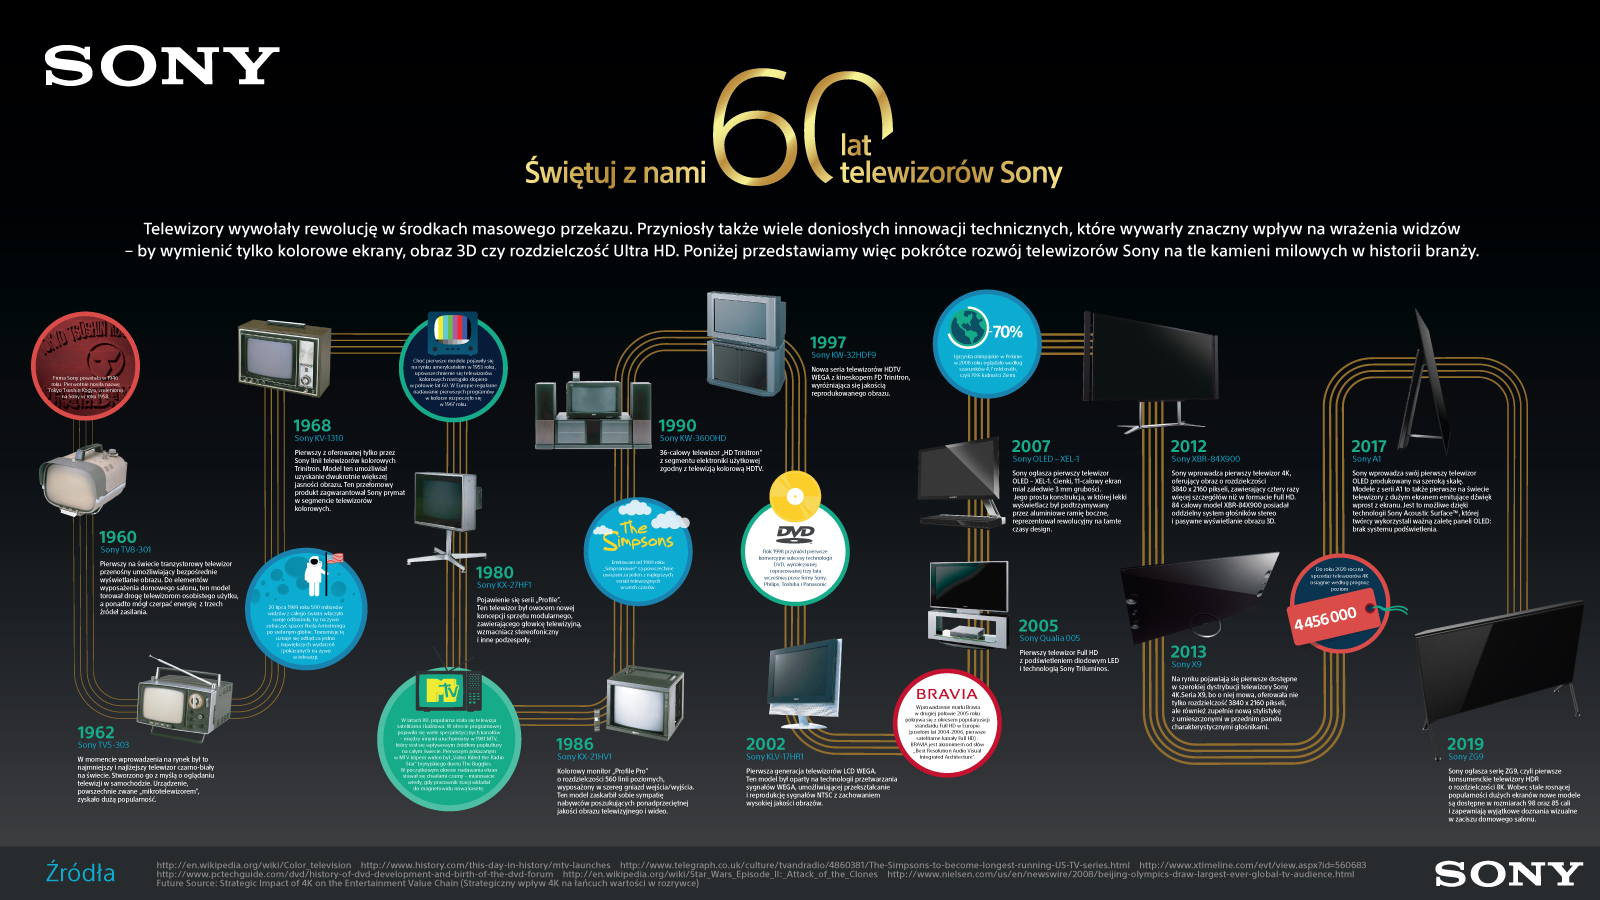 Sony TV 60 lat